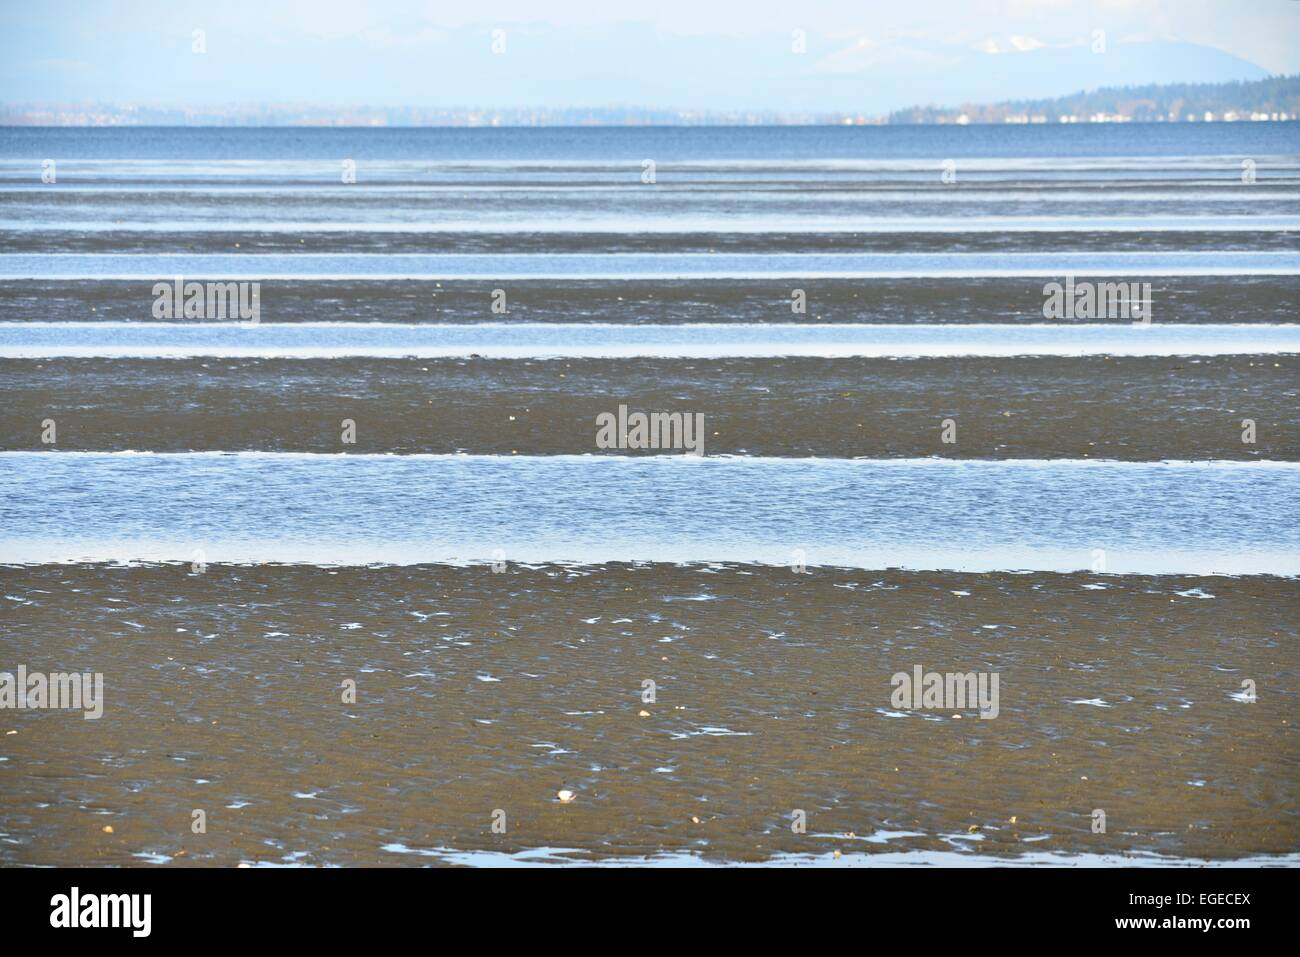 Parallels. A receding tide captures water forming parallel lines - Stock Image